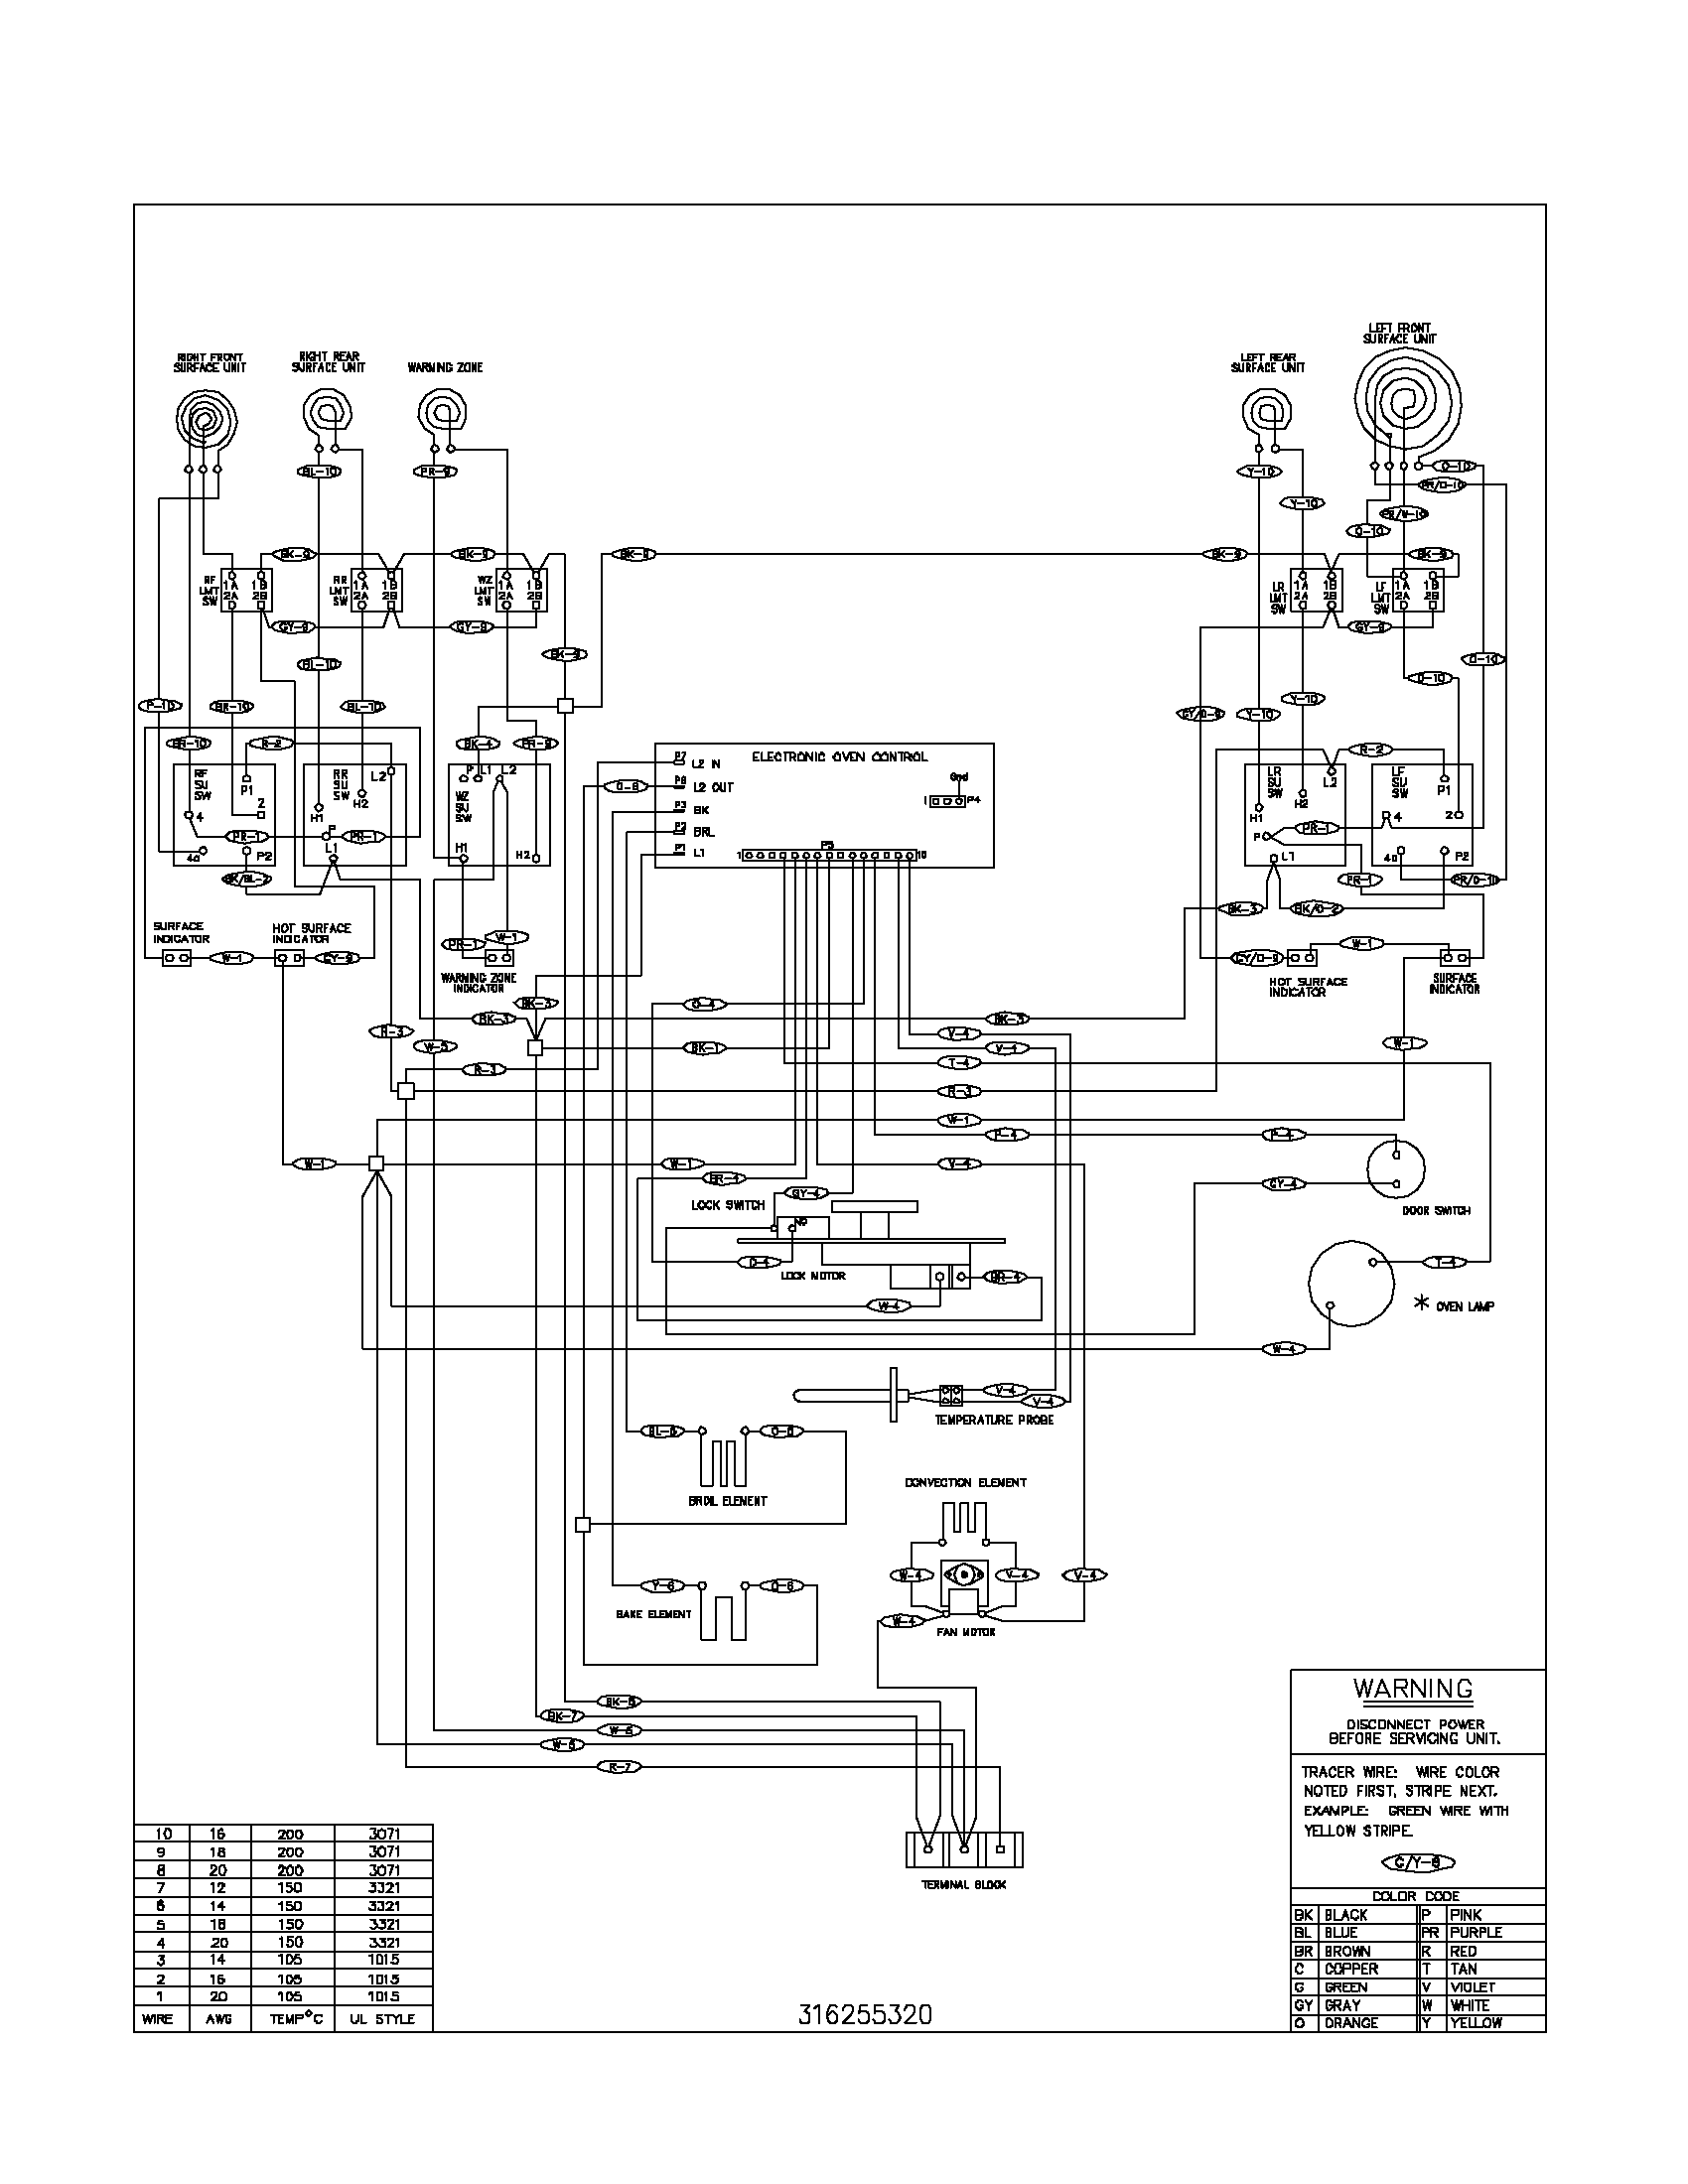 whirlpool fefl88acc electric range timer stove clocks and rh appliancetimers com wiring diagram for whirlpool refrigerator wiring diagram for whirlpool refrigerator